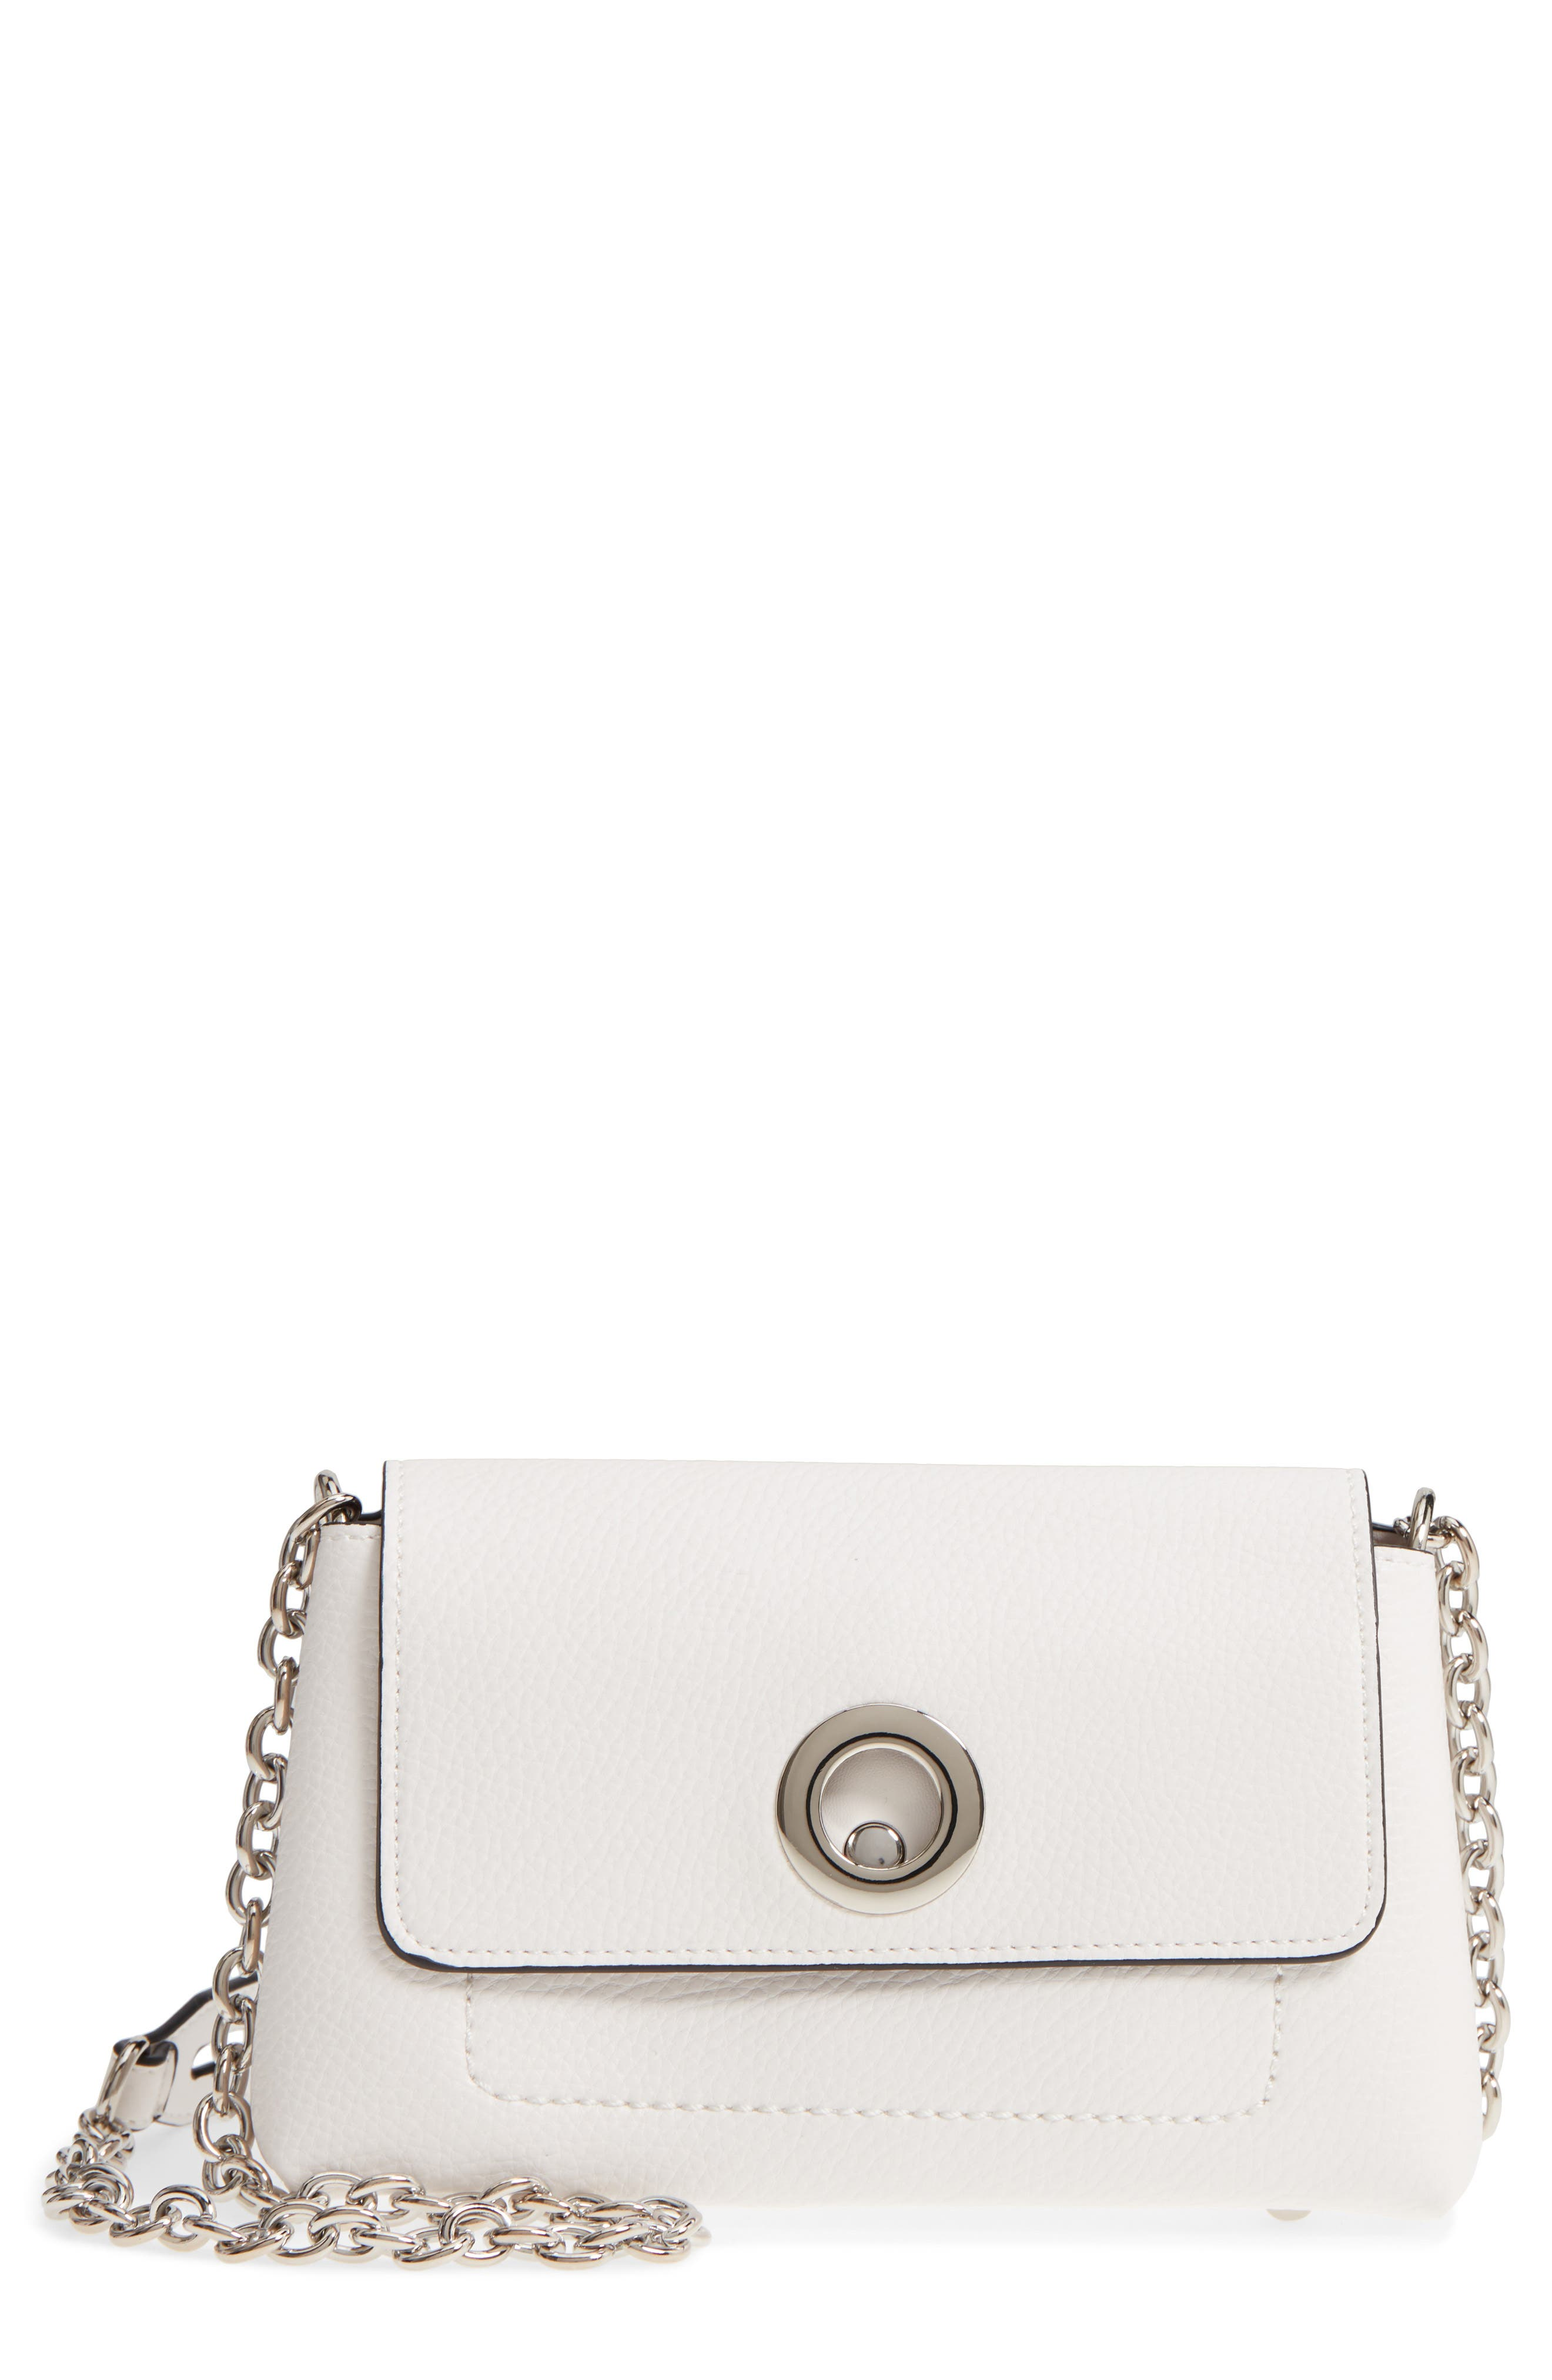 Sondra Roberts Chain Strap Faux Leather Crossbody Bag